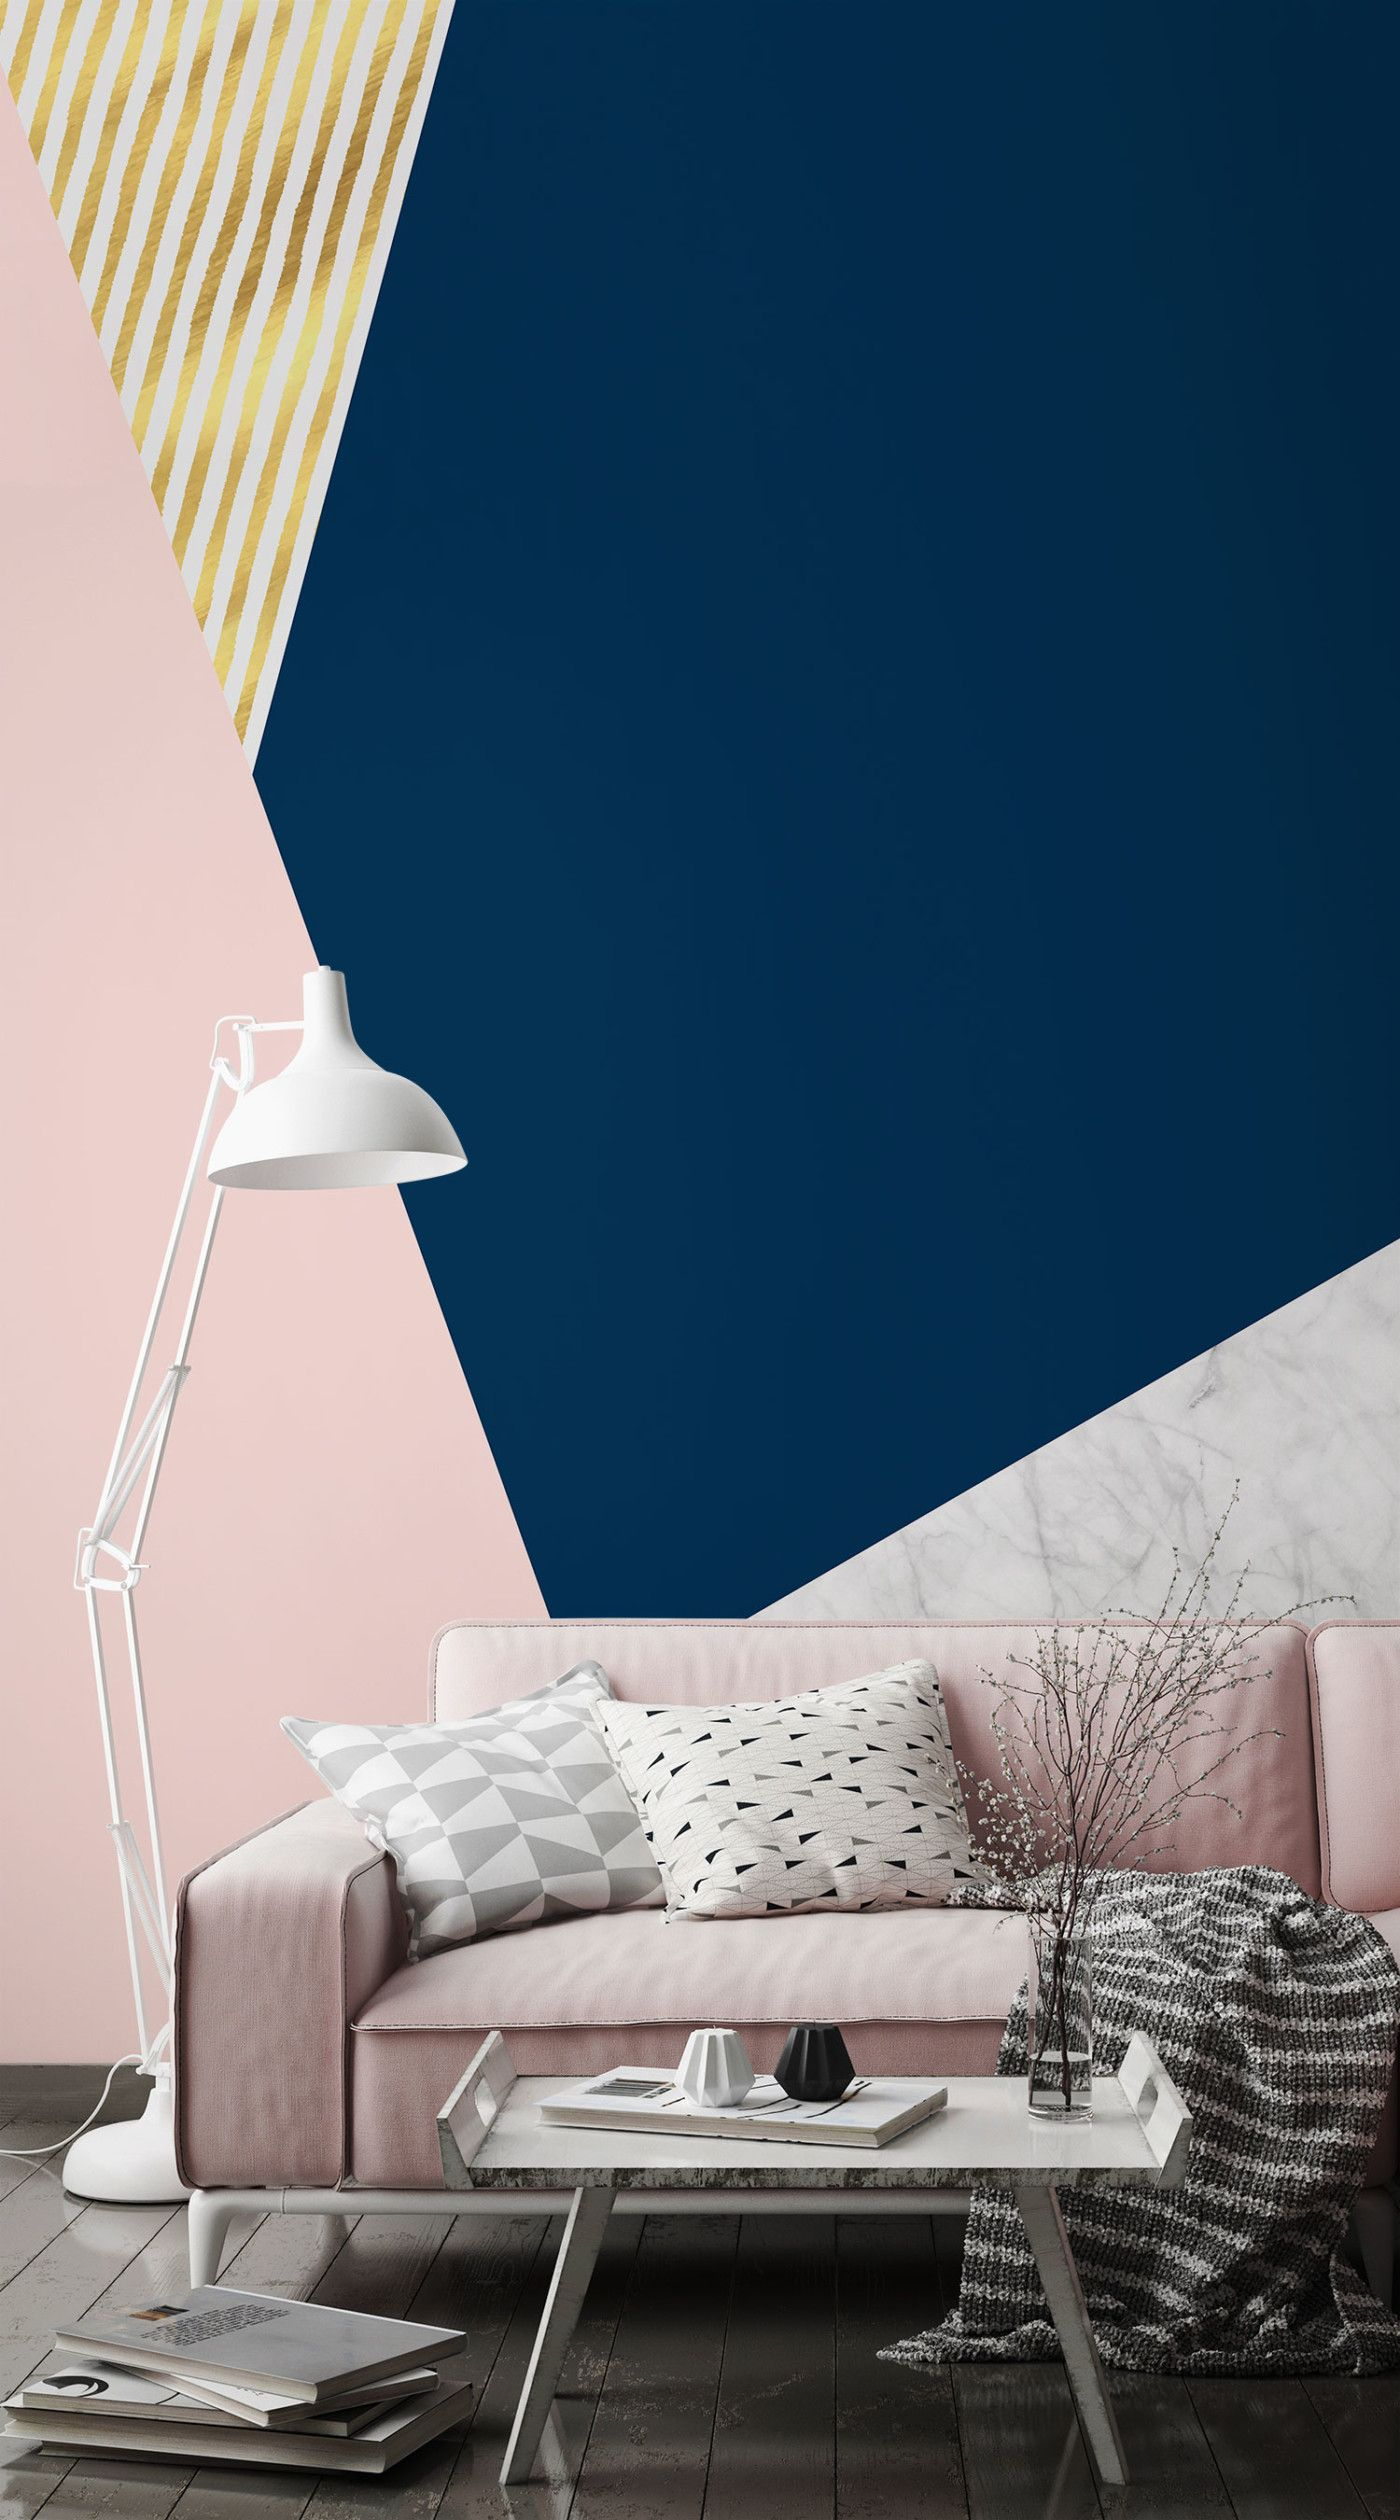 Modernise your home with these cutting-edge Geometric Wallpaper Murals   Murals Wallpaper & Modernise your home with these cutting-edge Geometric Wallpaper ...